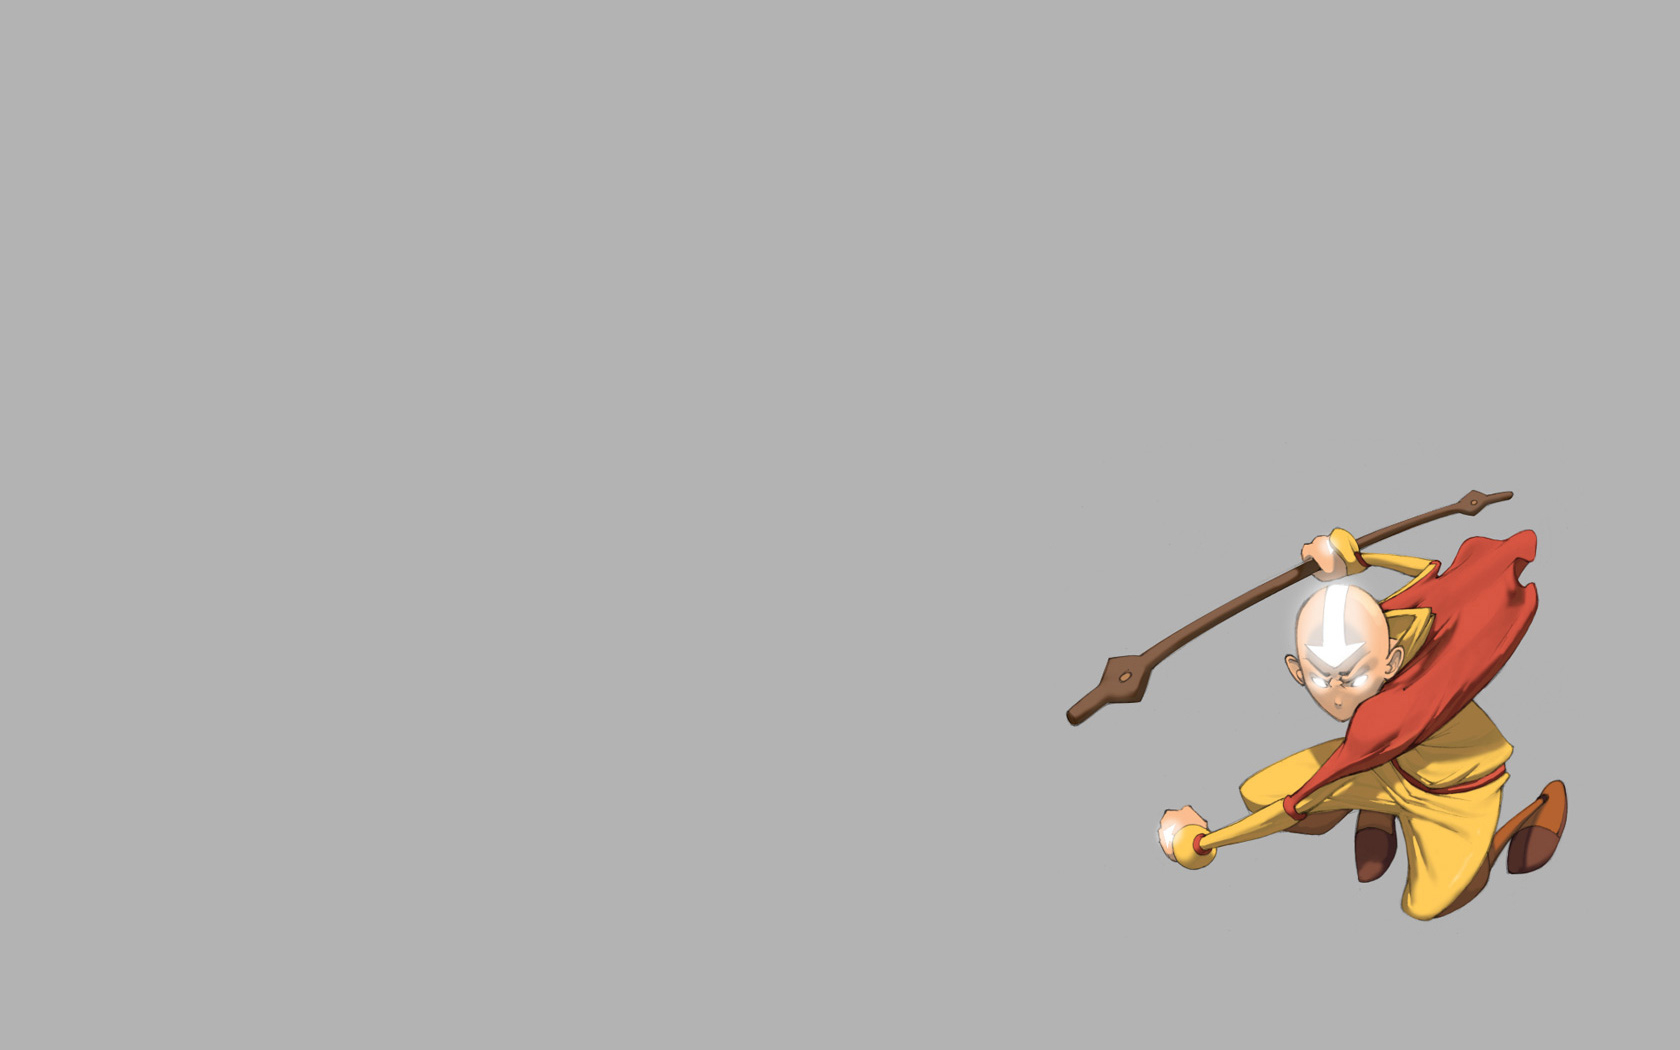 Avatar The Last airbender HD Wallpaper